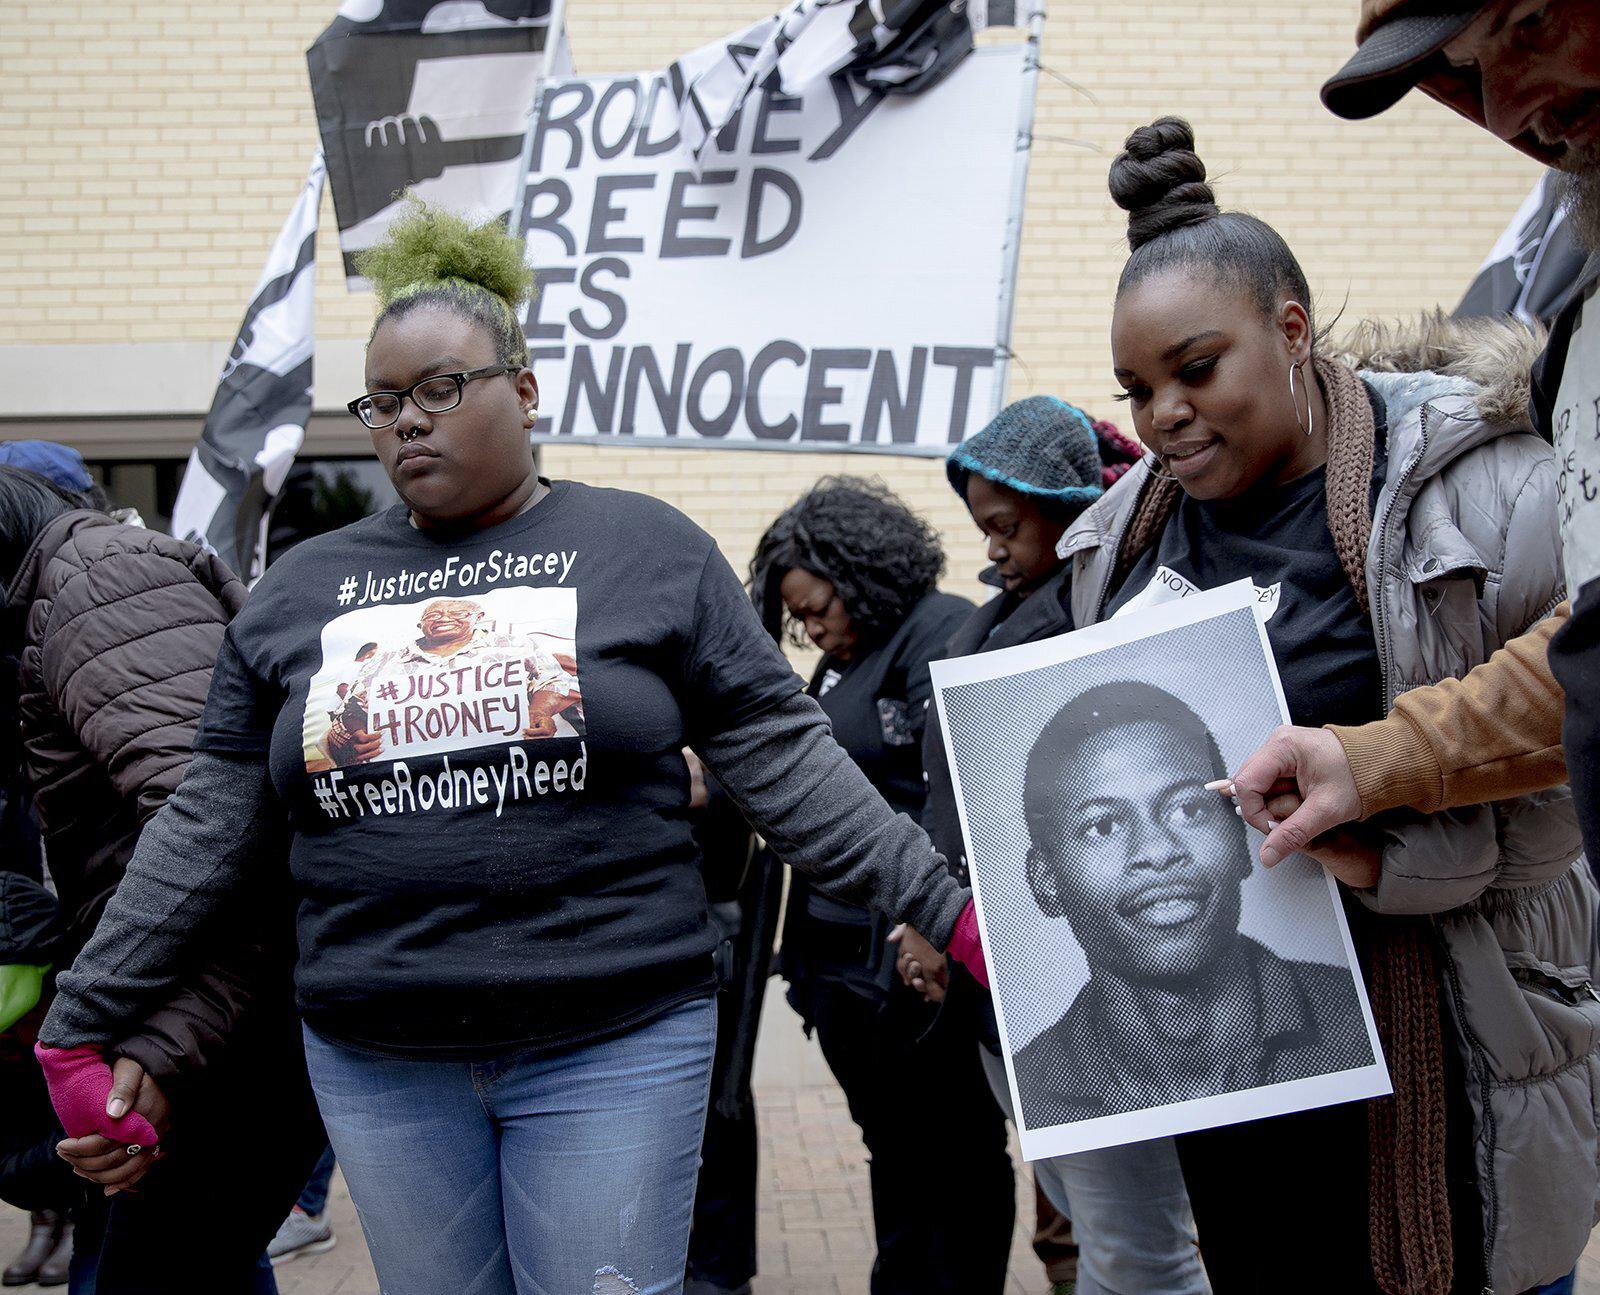 Rodney Reed: Texas governors have commuted death sentences